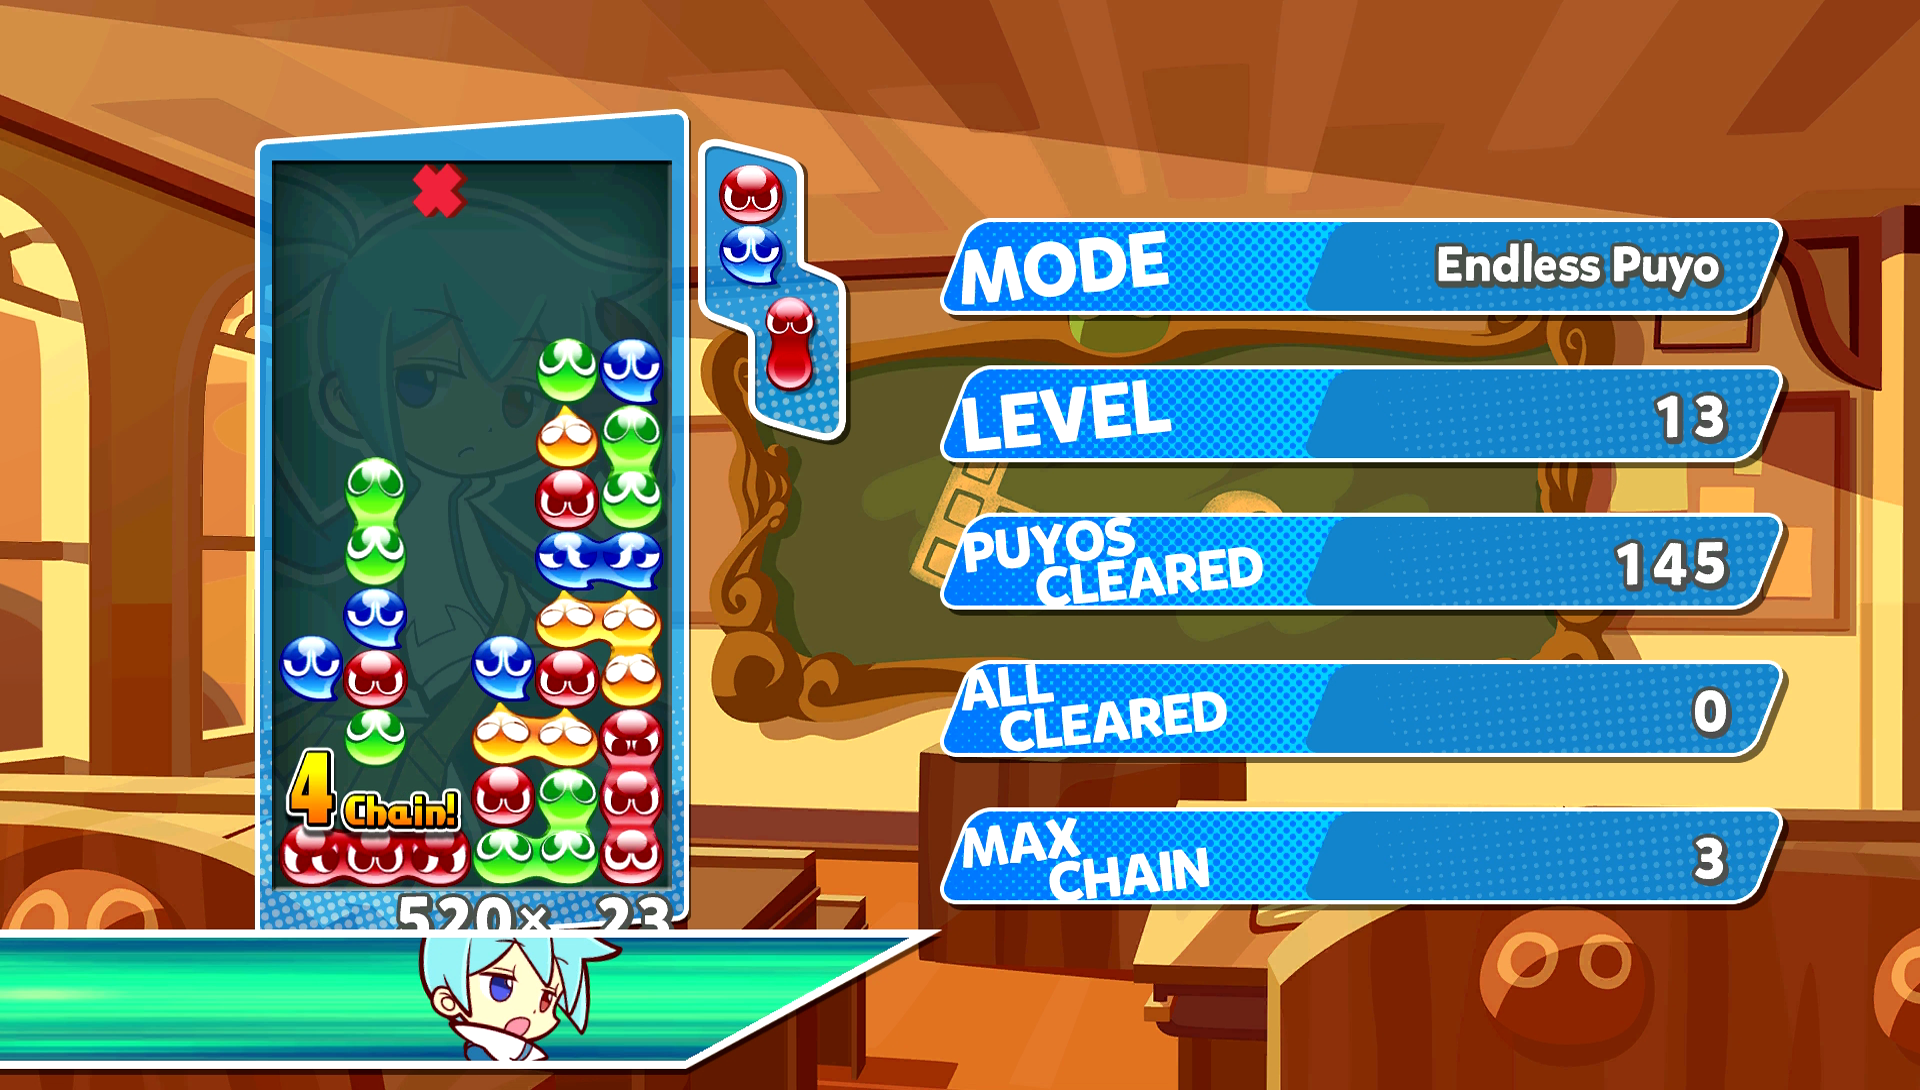 Puyo Puyo Tetris single player